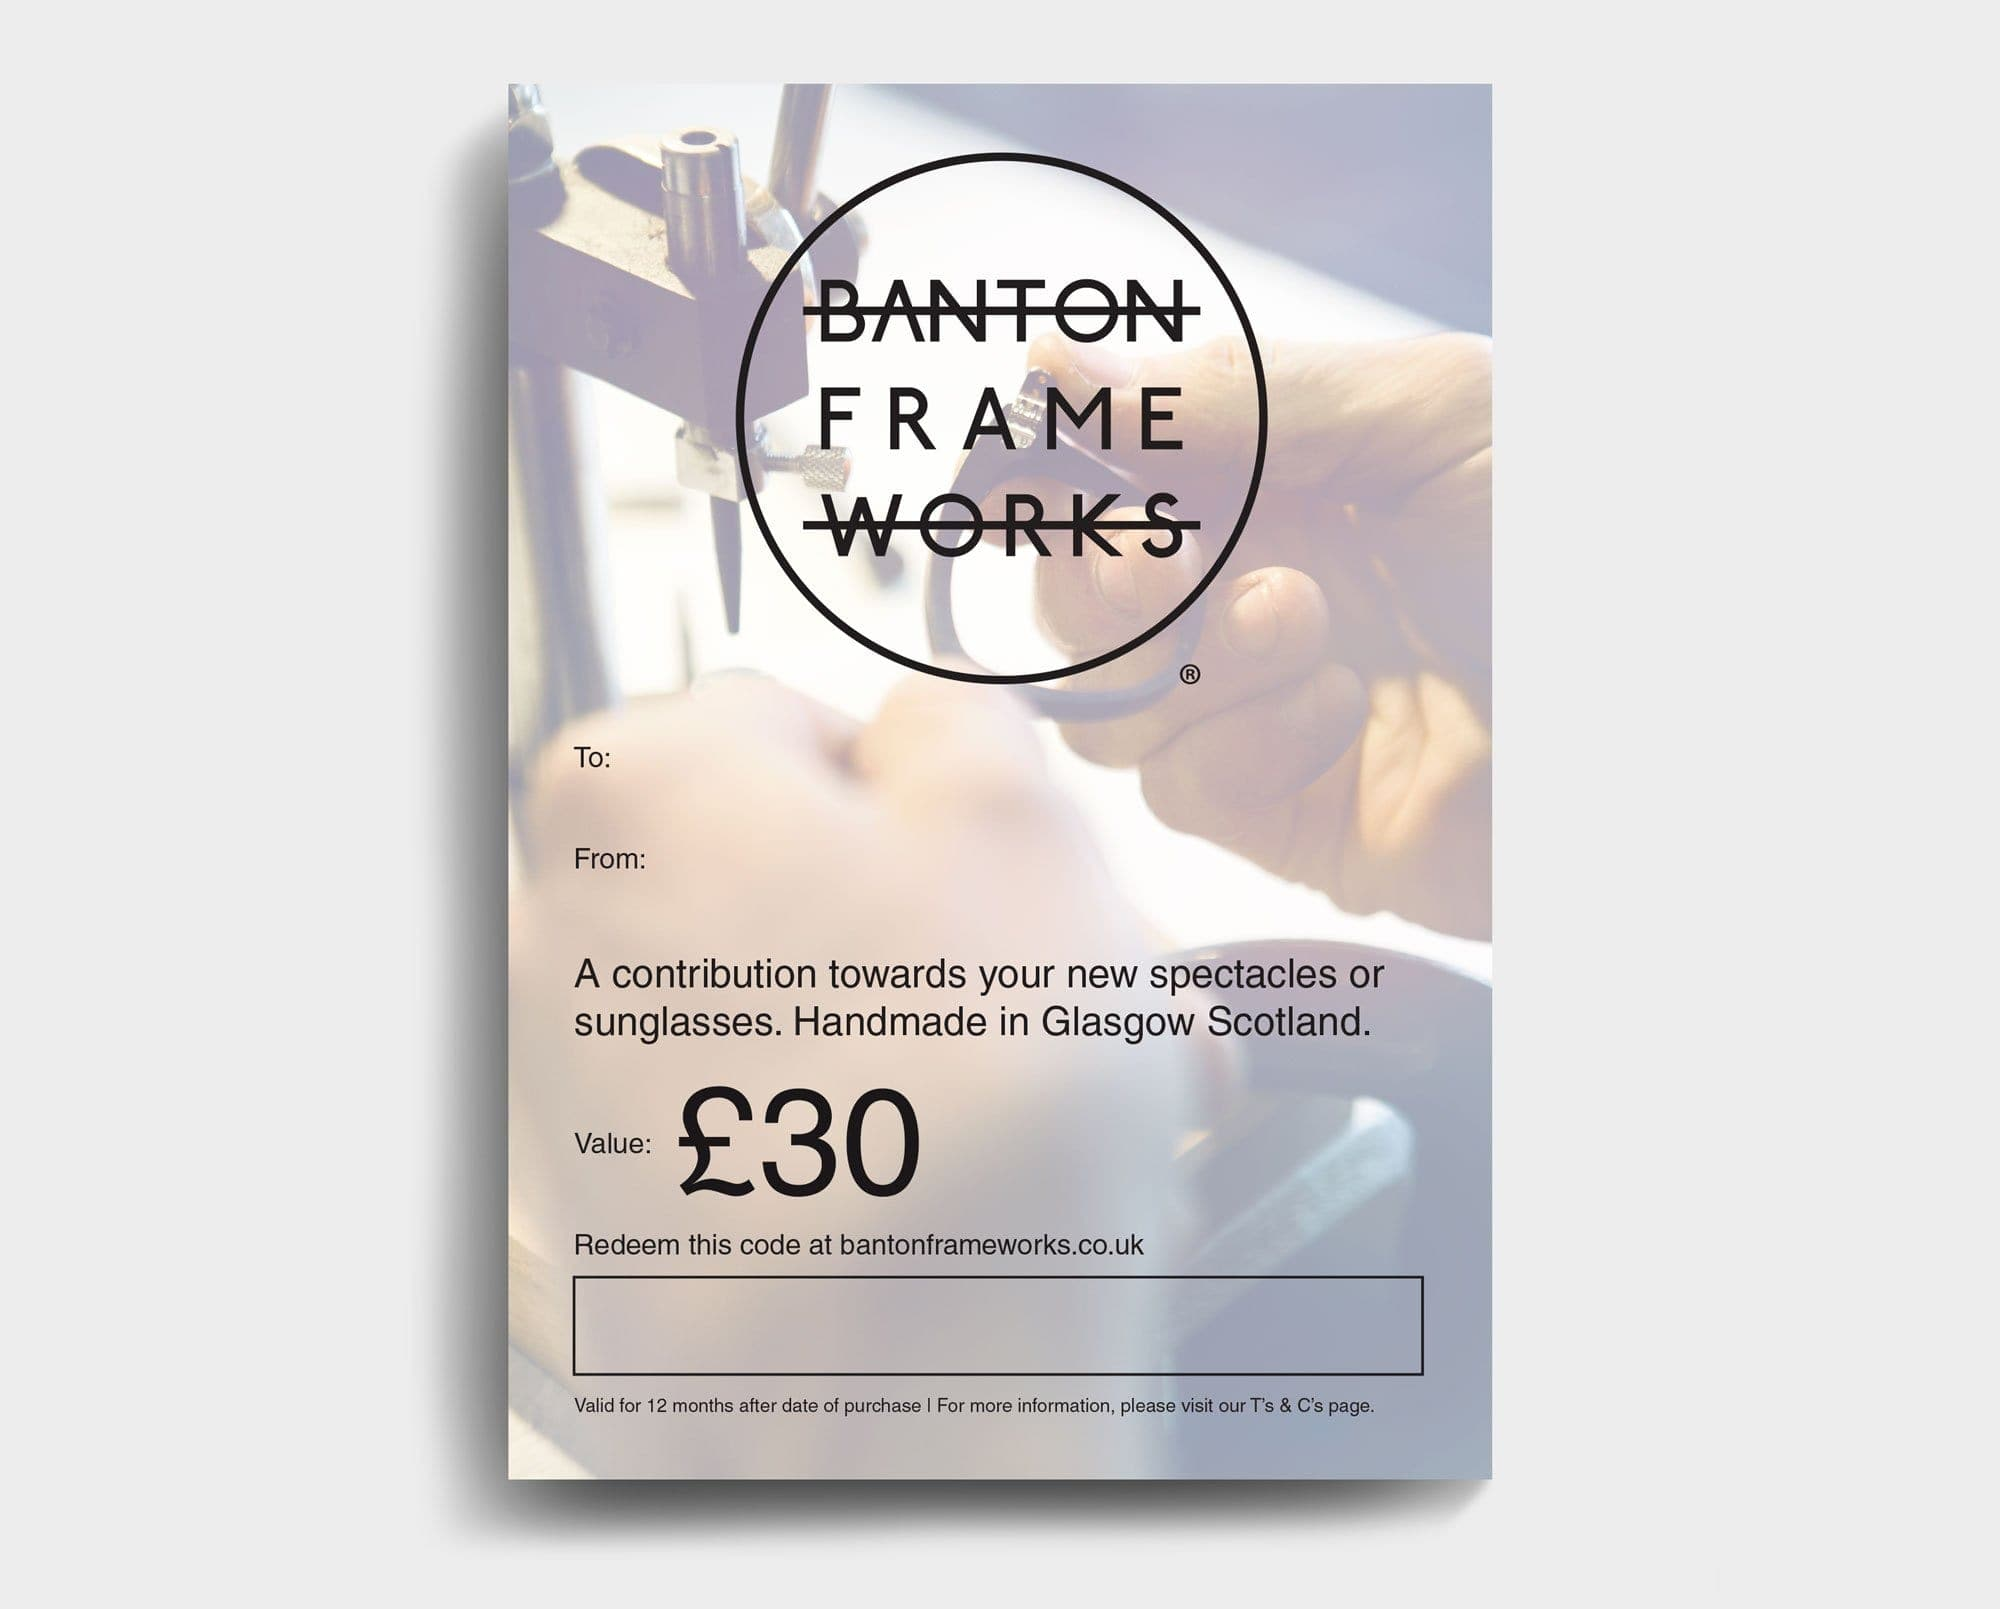 Banton Frameworks Gift Card worth 30 GBP